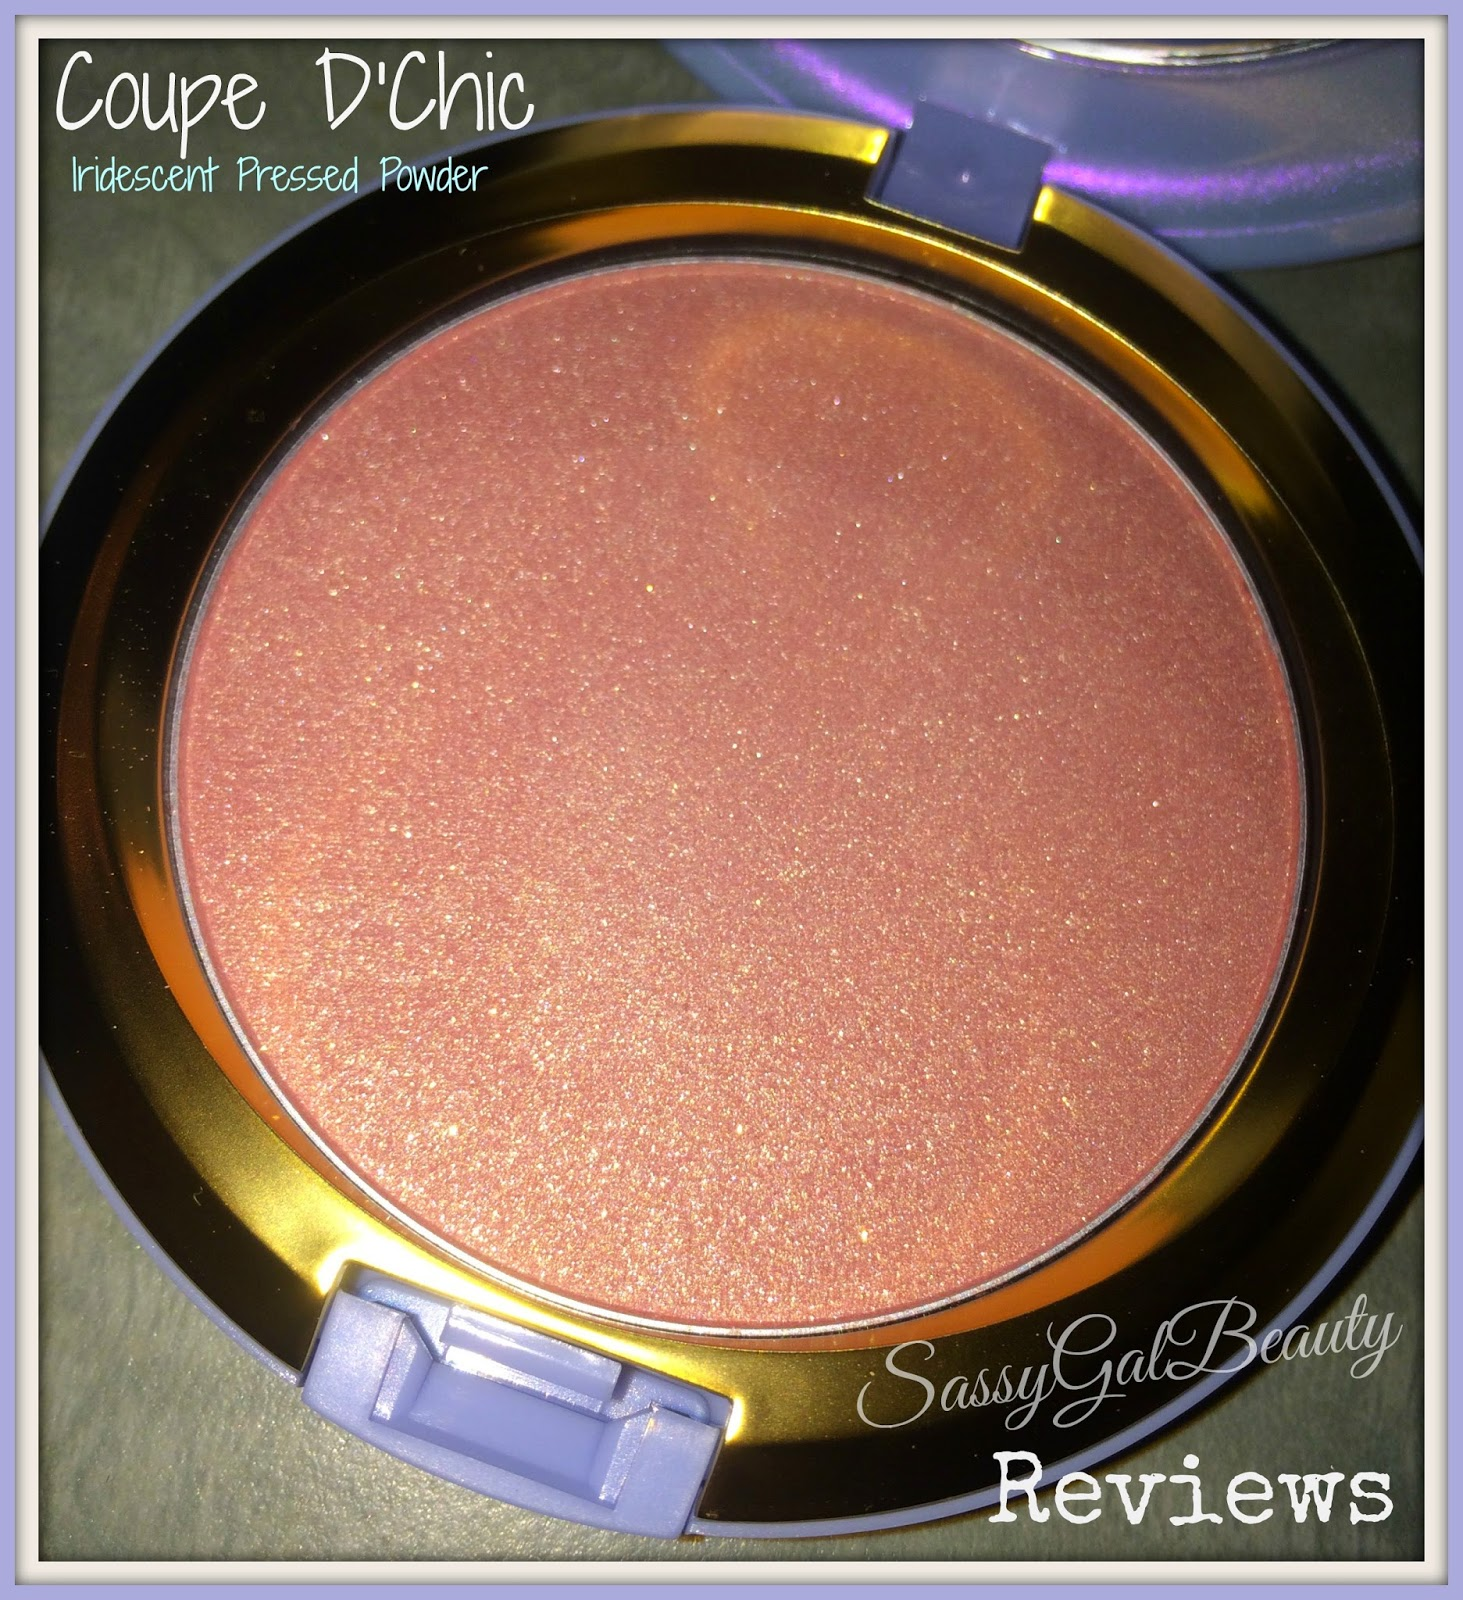 M.A.C. Cinderella Collection: Coupe D'Chic Powder